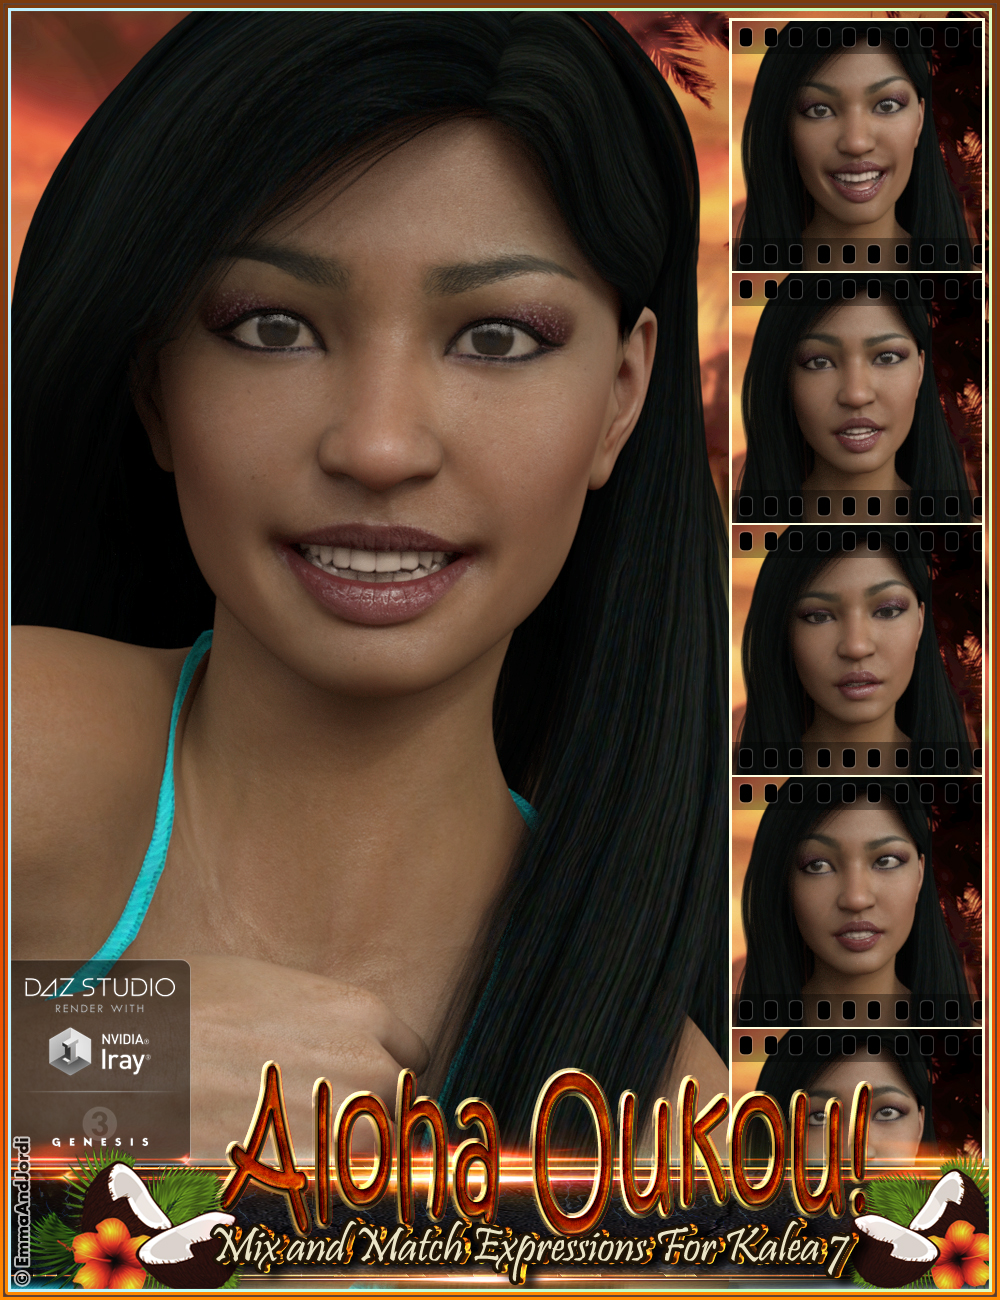 Aloha Oukou Mix and Match Expressions for Kalea 7 and Genesis 3 Female(s) by: EmmaAndJordi, 3D Models by Daz 3D